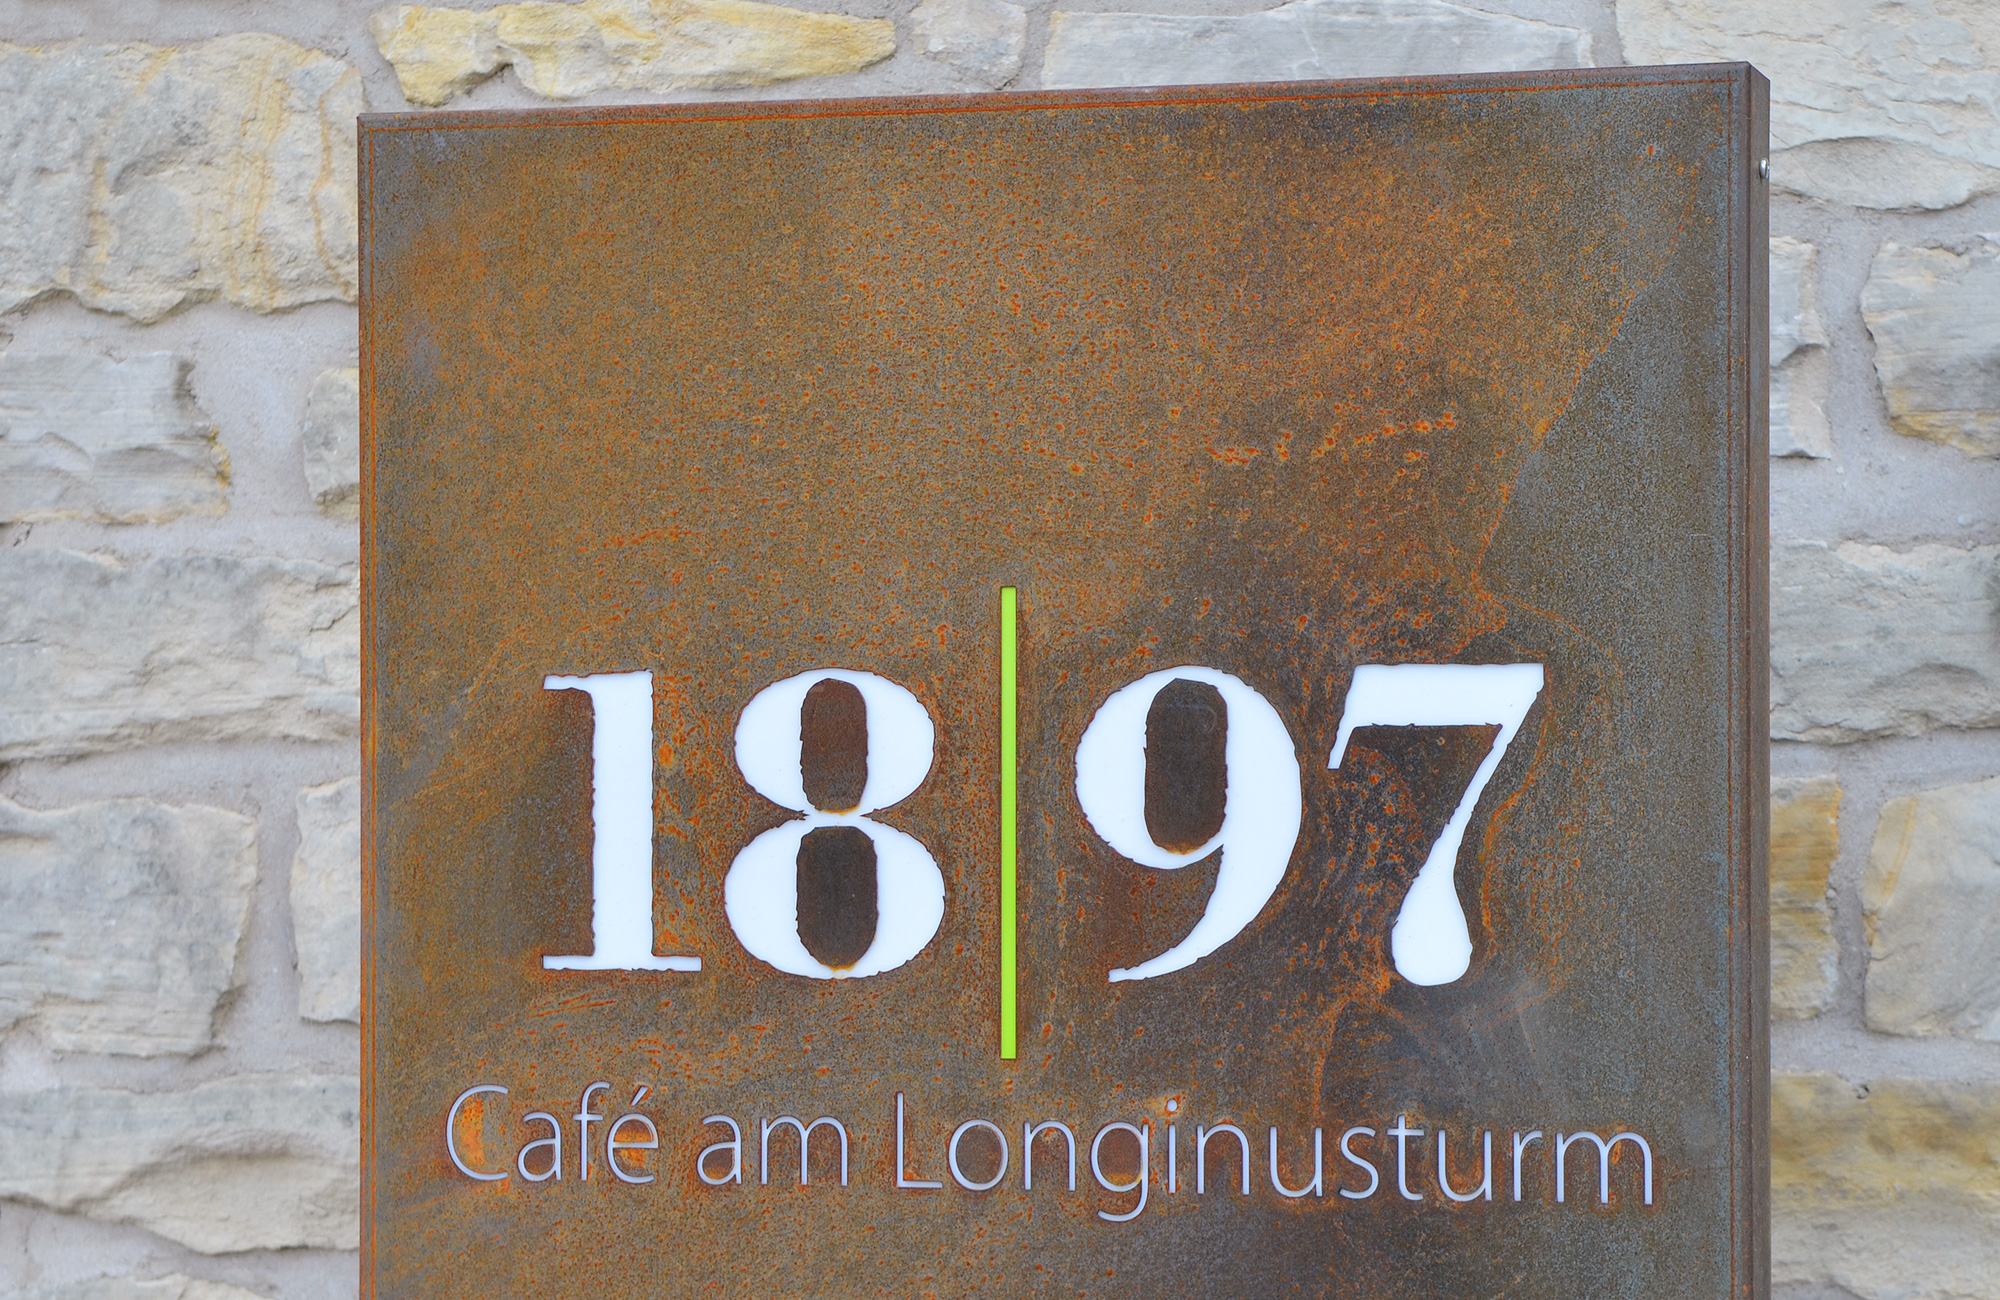 Cafe 18|97 Longinusturm